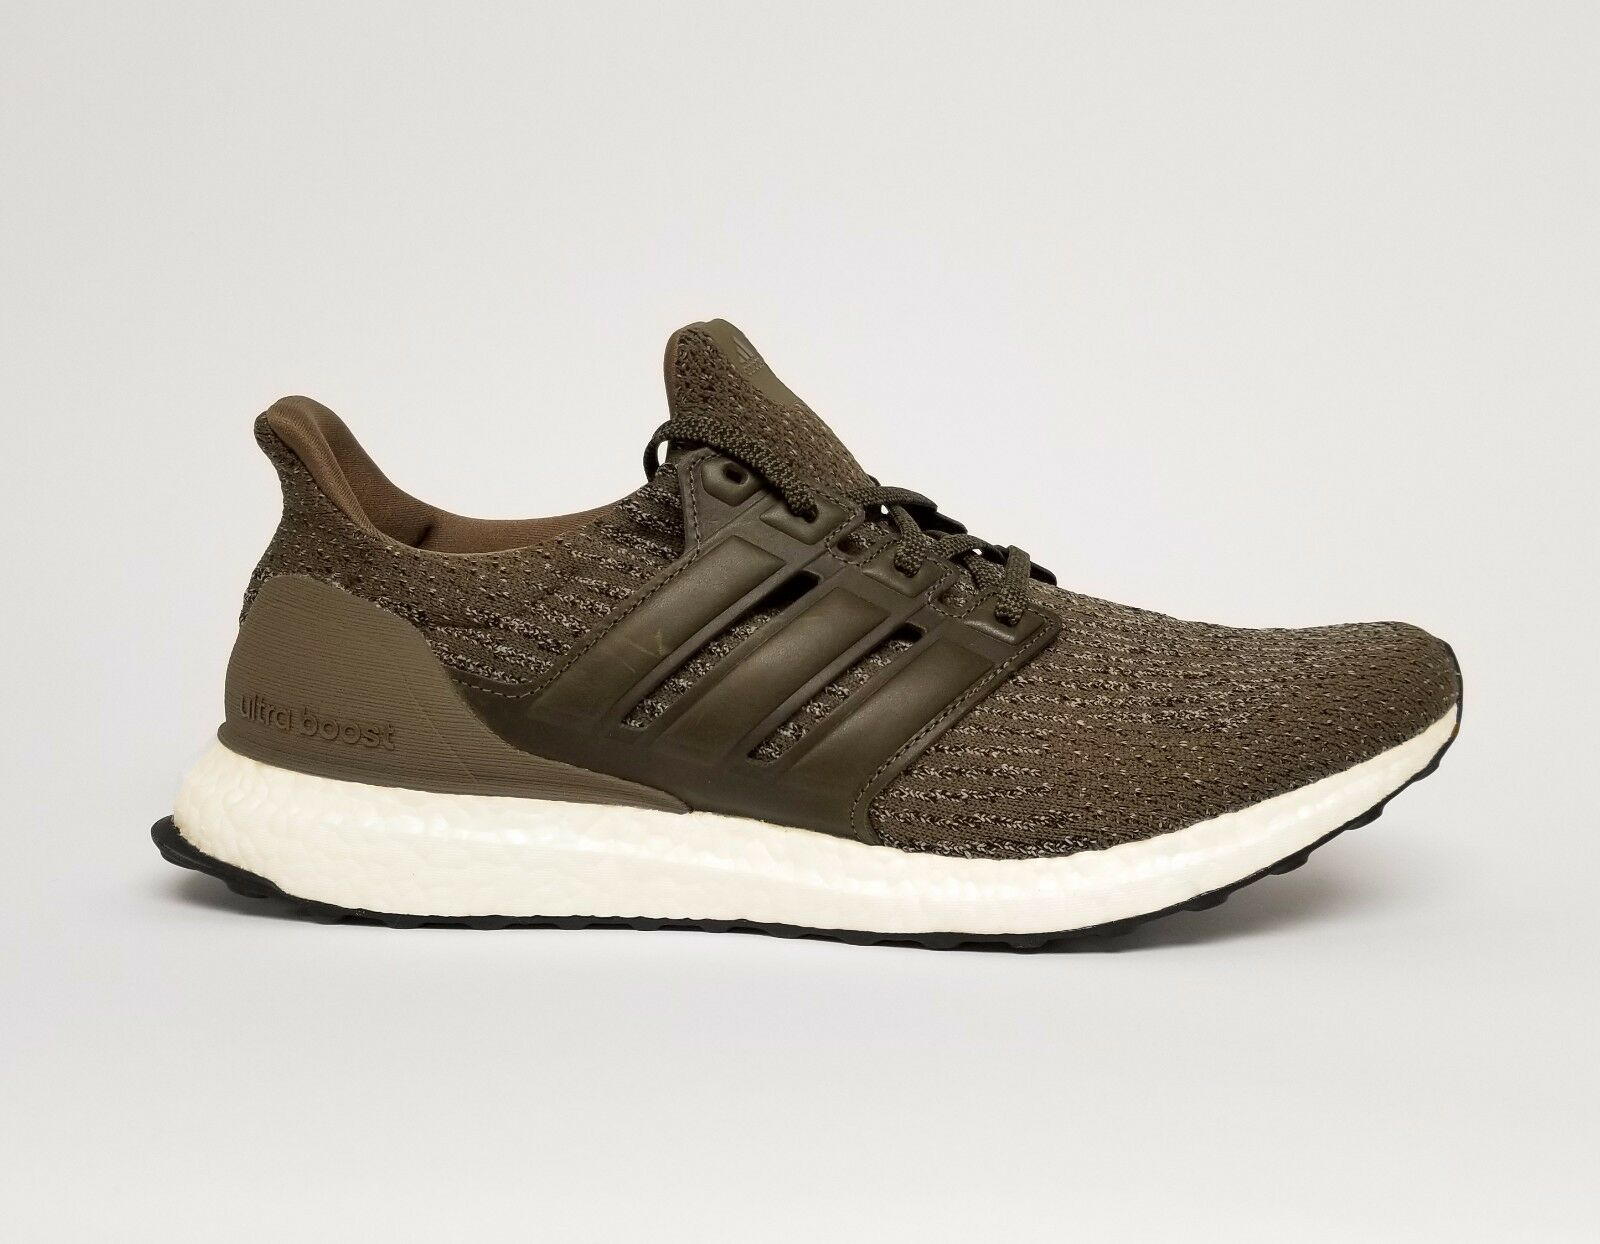 Adidas Men's UltraBOOST Running Shoes Trace Olive S82018 b